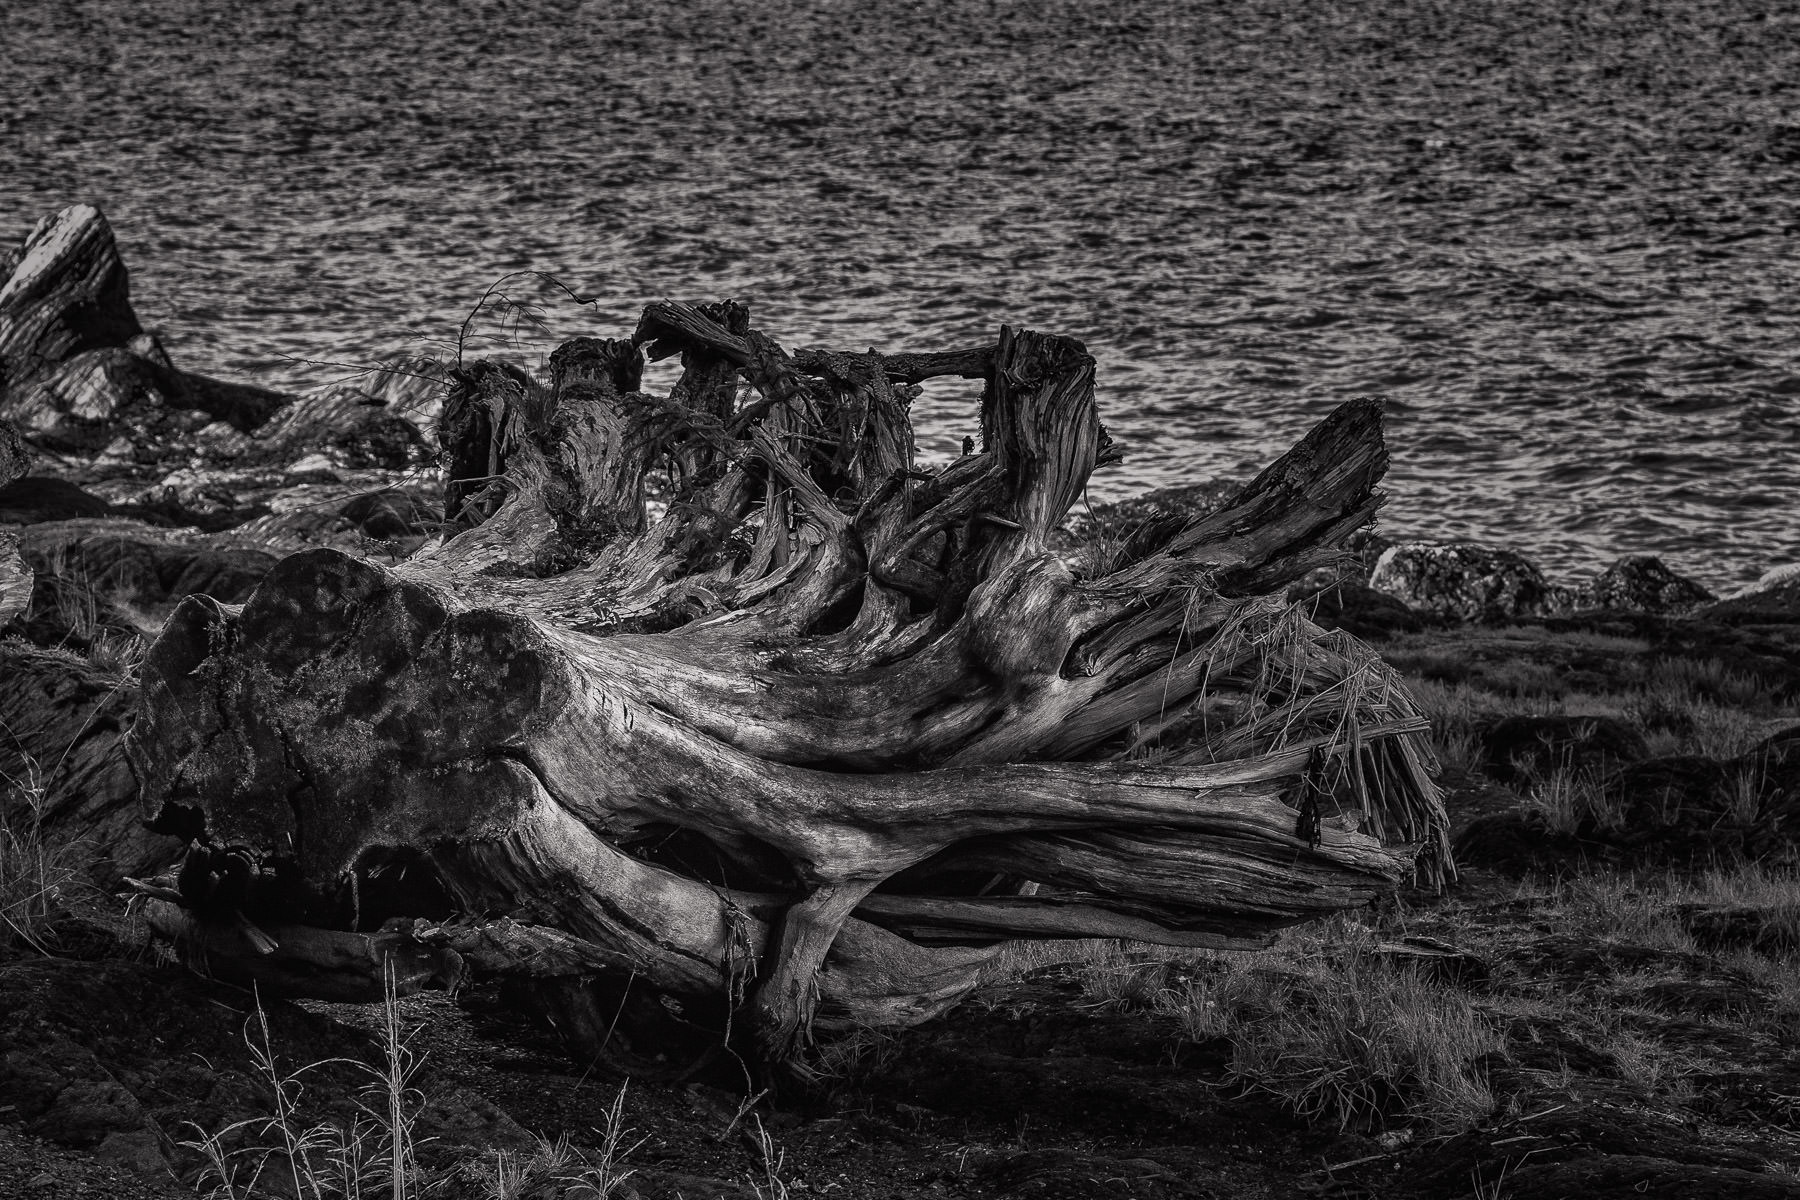 An uprooted tree stump lies on the shore of the Tongass Narrows near Ketchikan, Alaska.